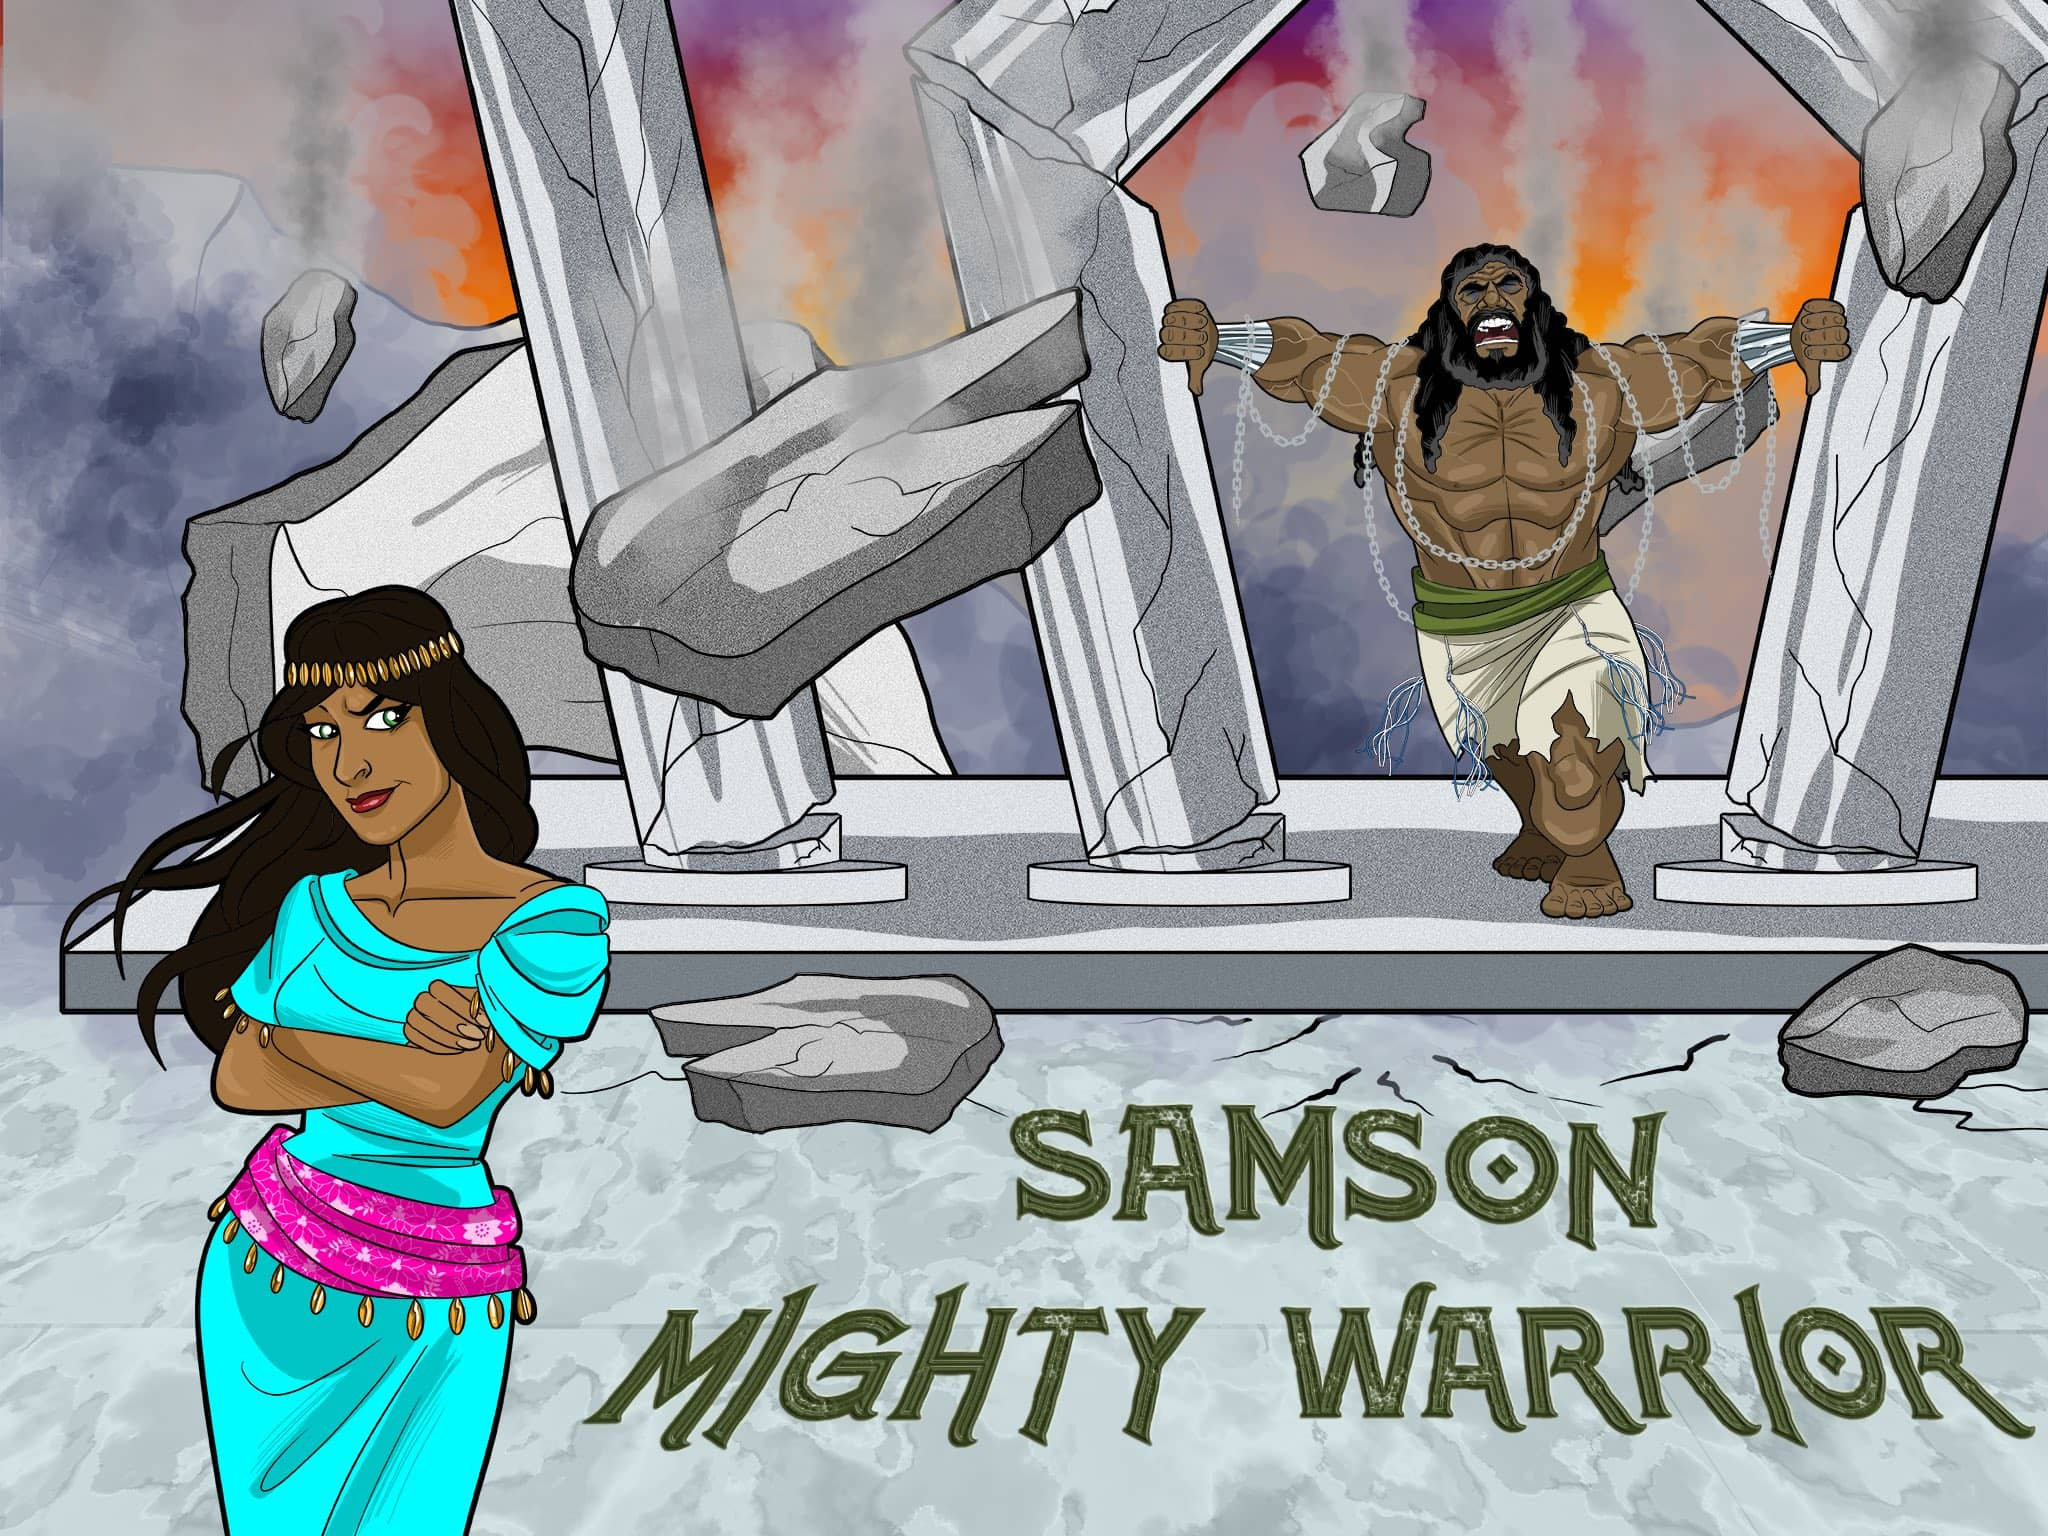 Samson Bible Story Amp Lesson Plans